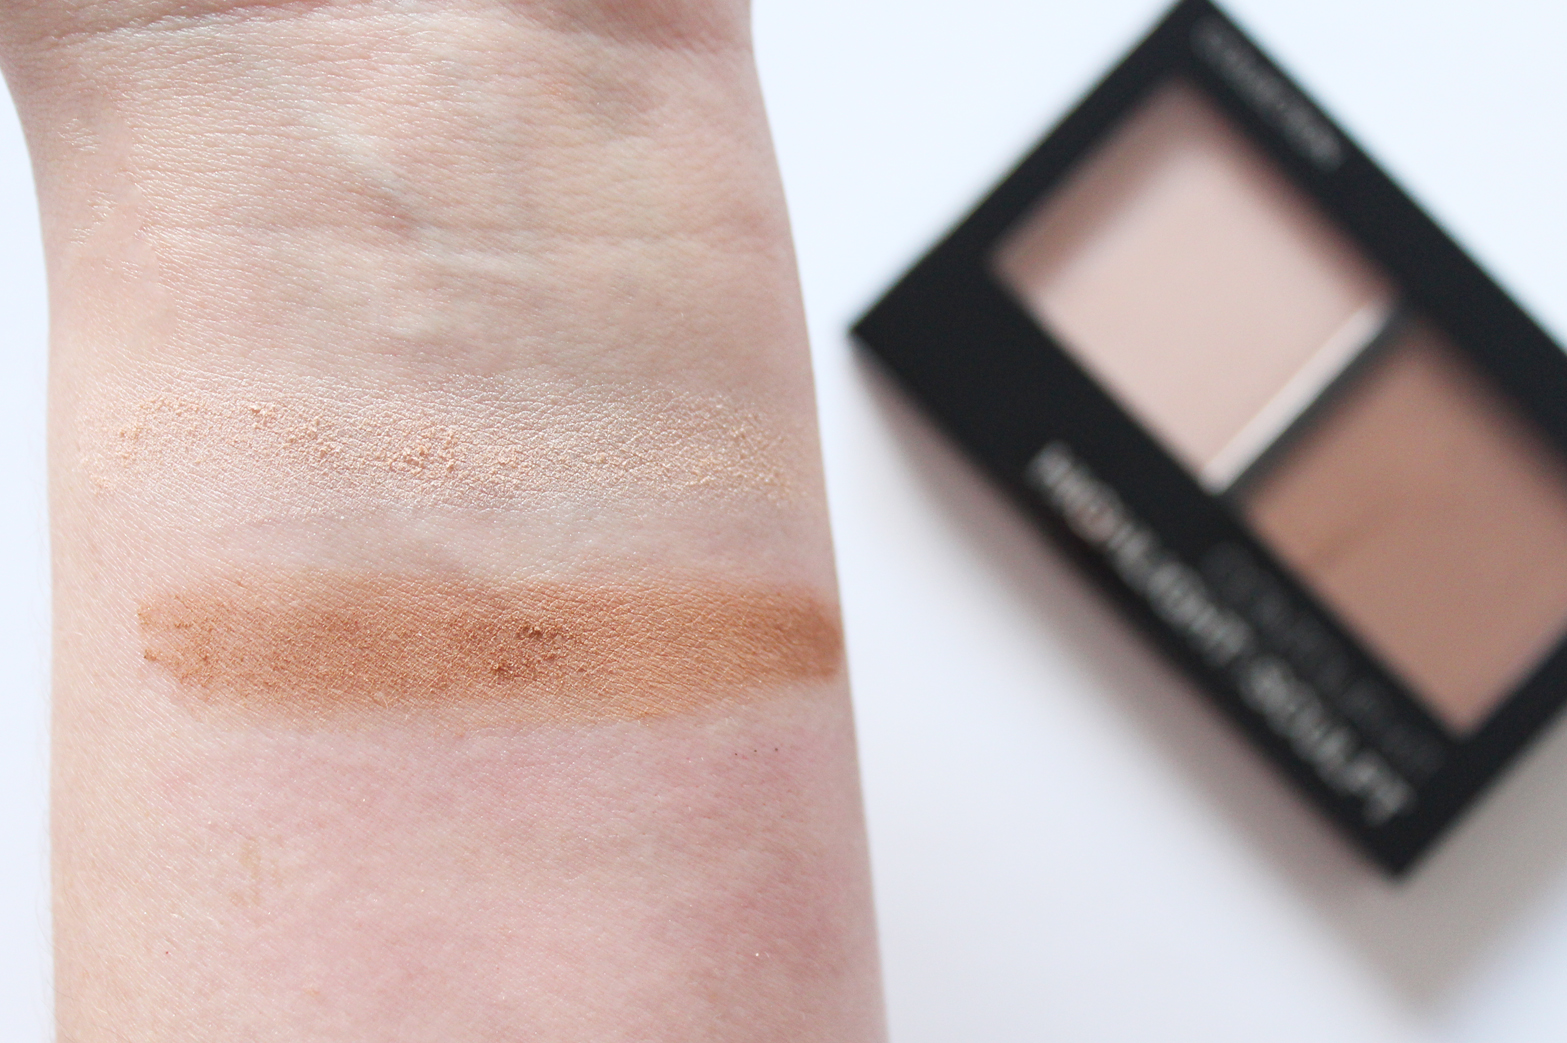 COLLECTION | Contour Kit Highlight + Sculpt Palette - Review + Swatches - CassandraMyee